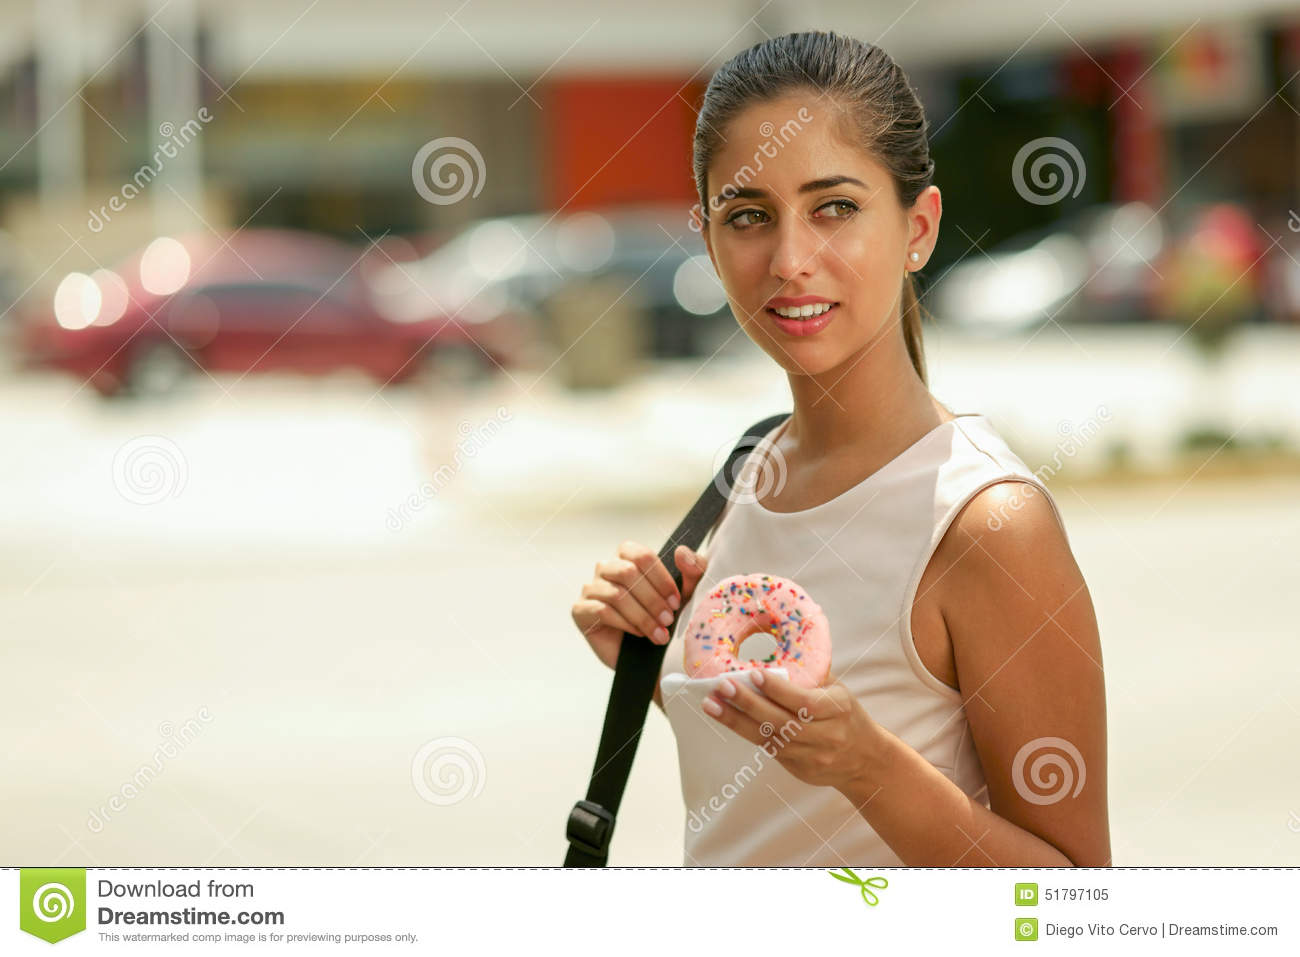 Business Woman Eating Donut For Breakfast Commuting To Work Stock